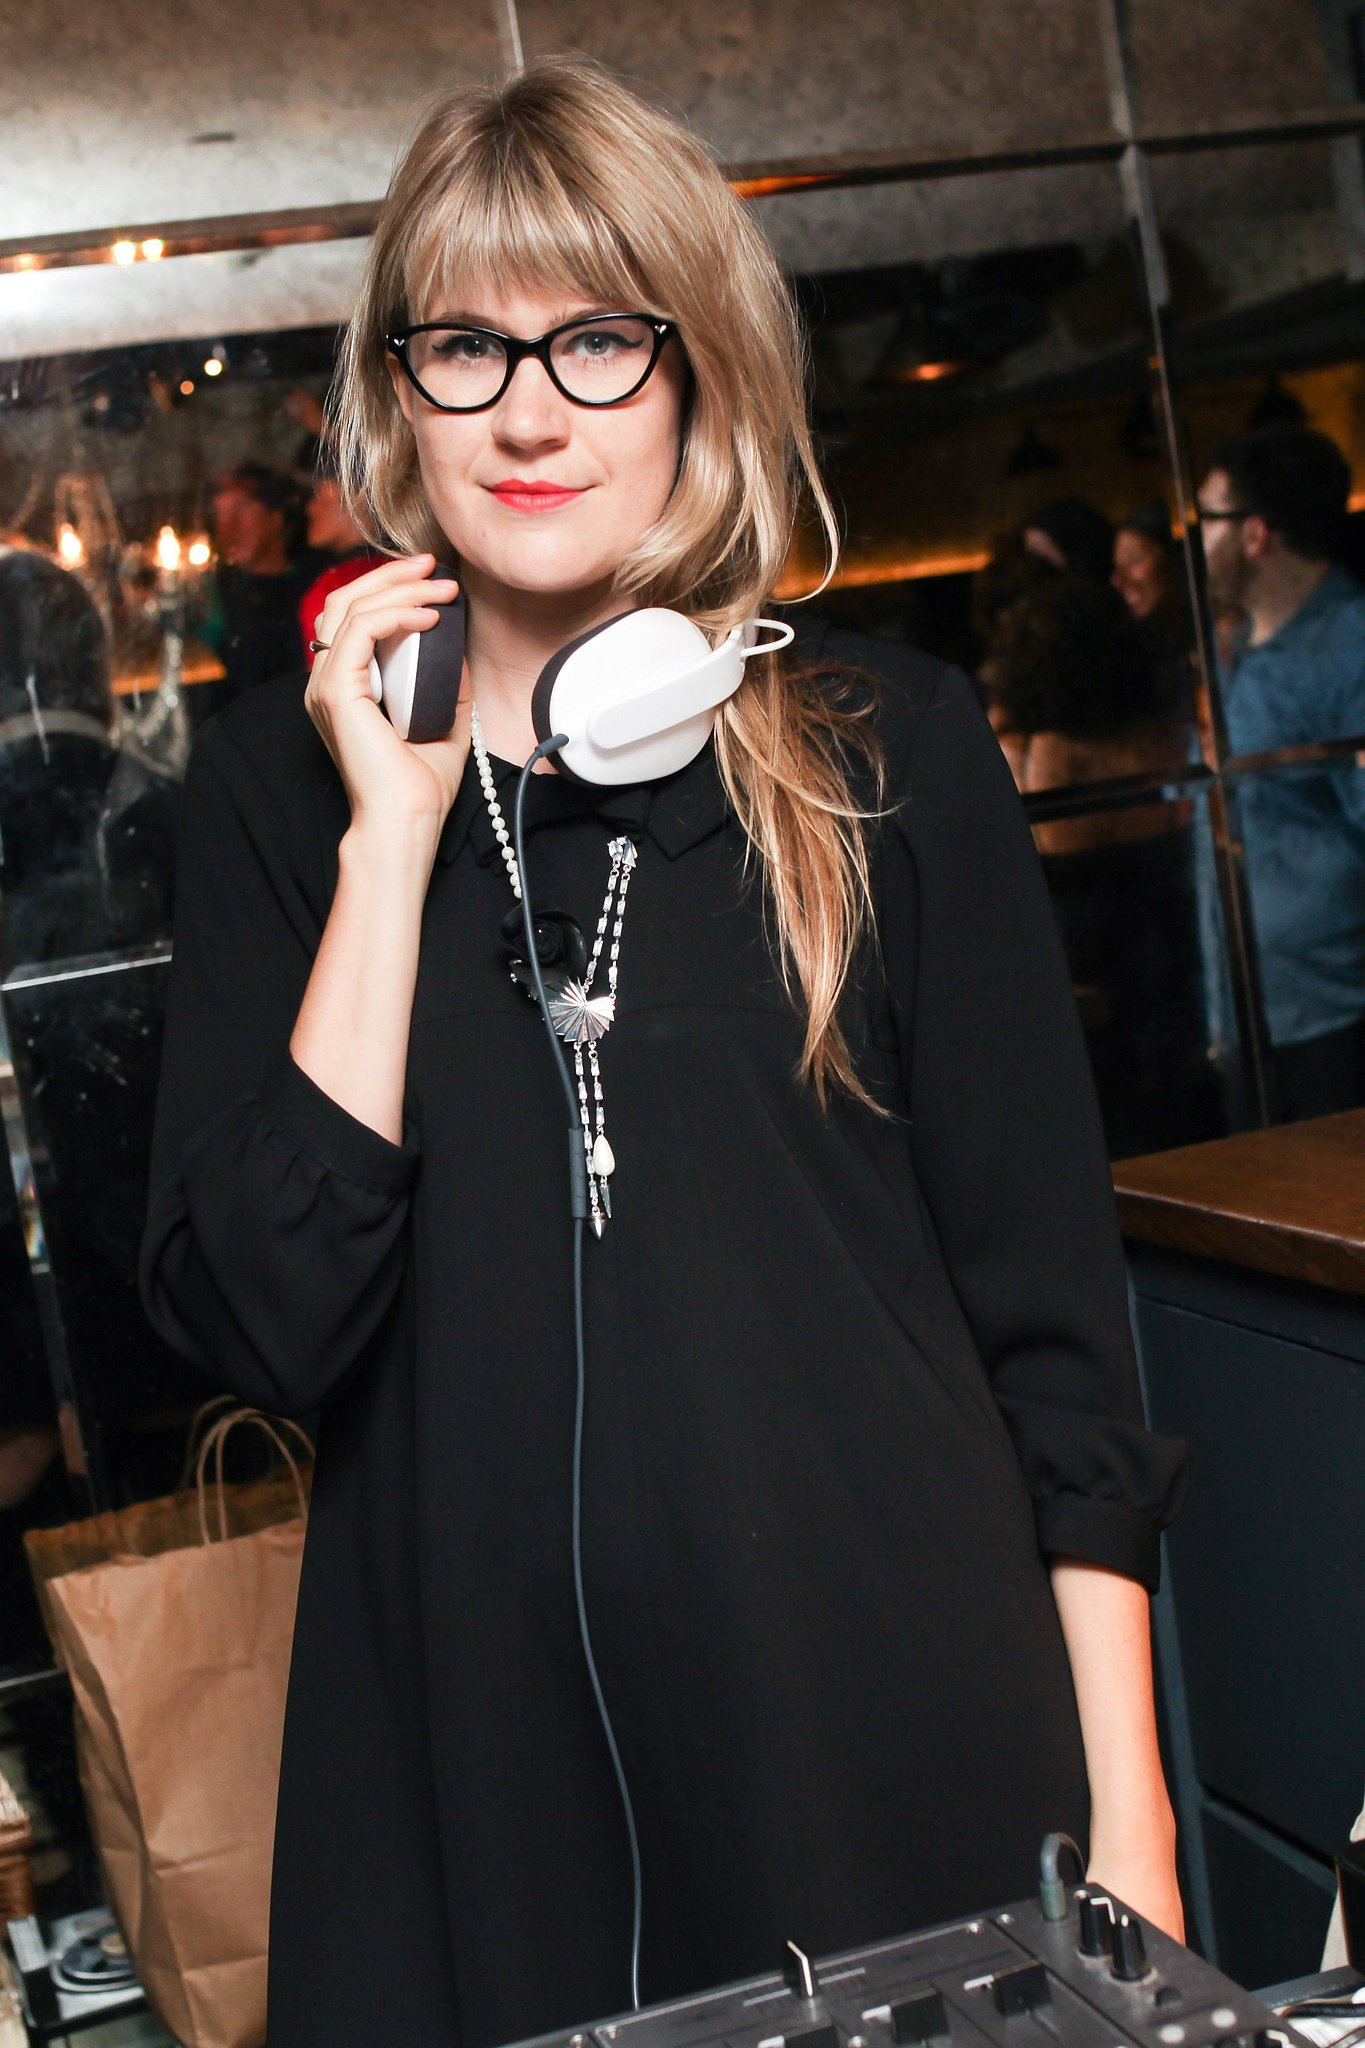 Tennessee Thomas kept the room on its feet at the Erickson Beamon Soho House bash in NYC.